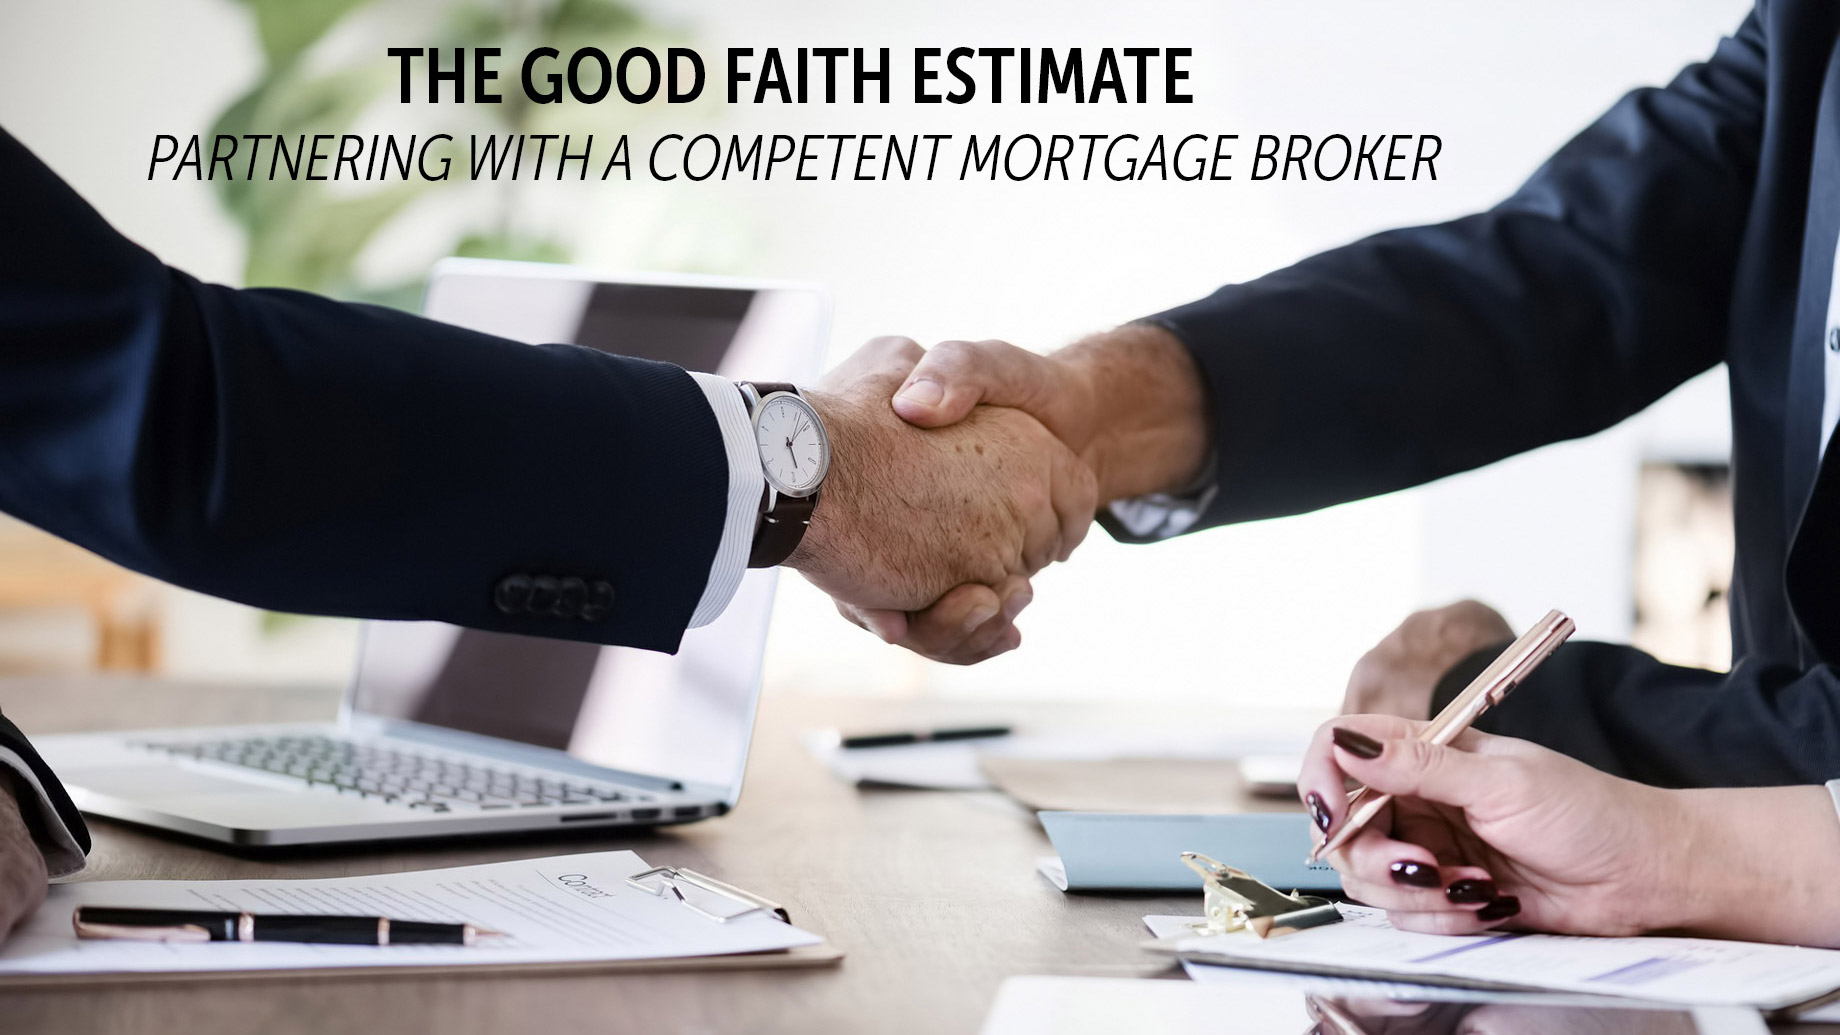 The Good Faith Estimate - Partnering with a Competent Mortgage Broker